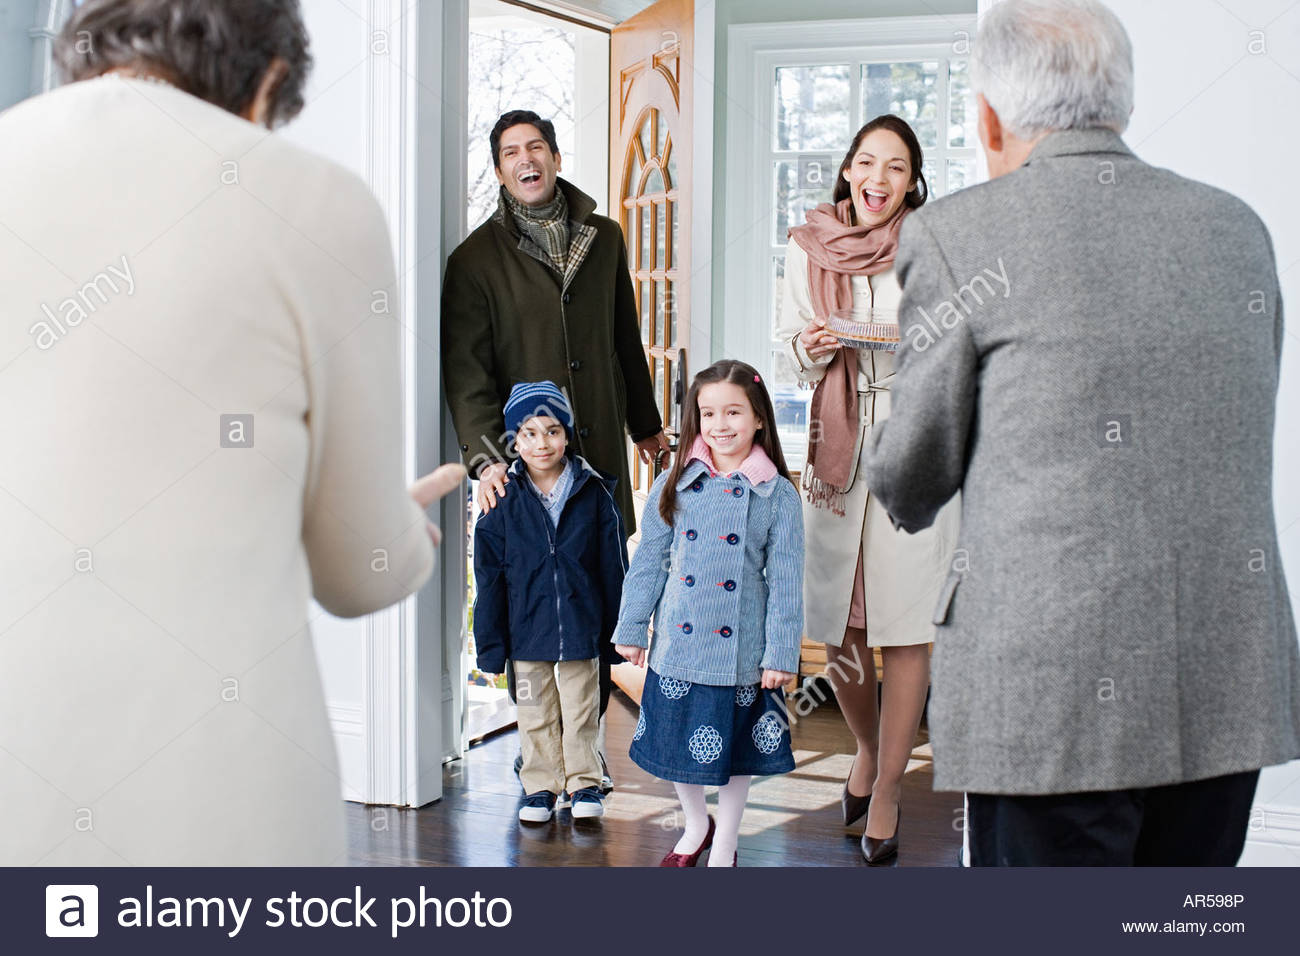 Family arriving at grandparents house - Stock Image